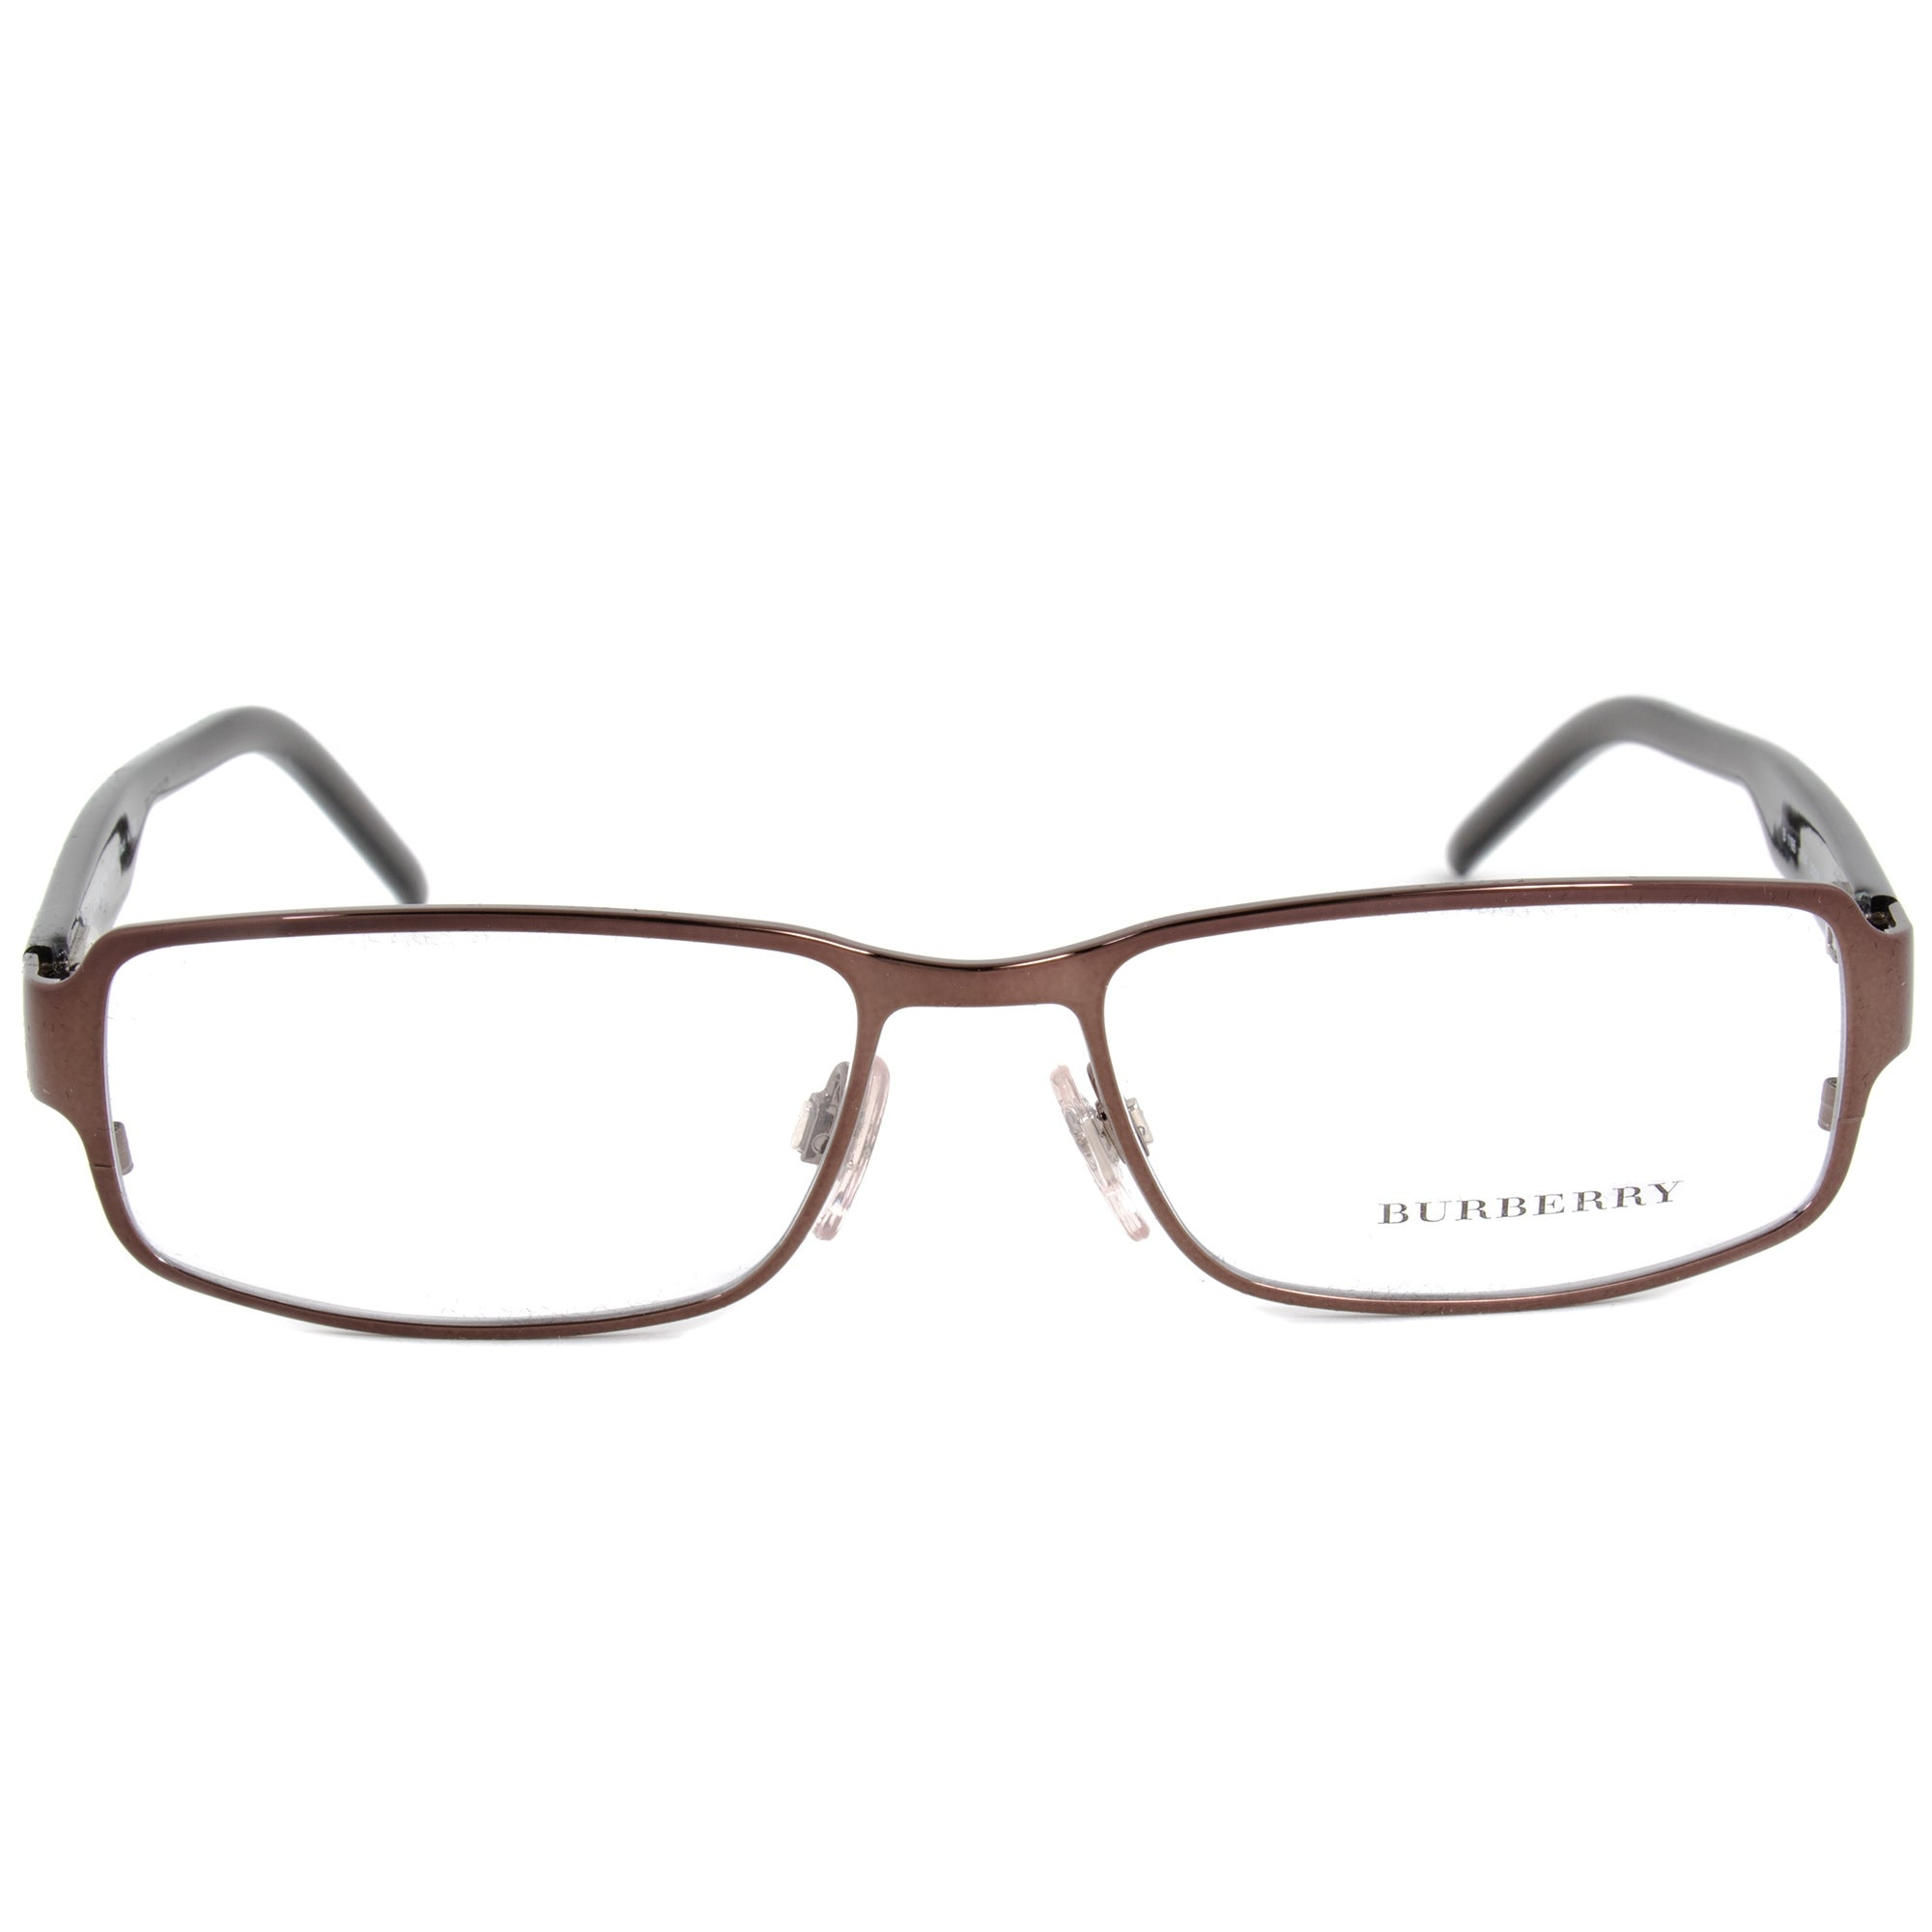 928997a070b2 Shop Burberry BE1195 1004 Eyeglass Frames - Free Shipping Today ...